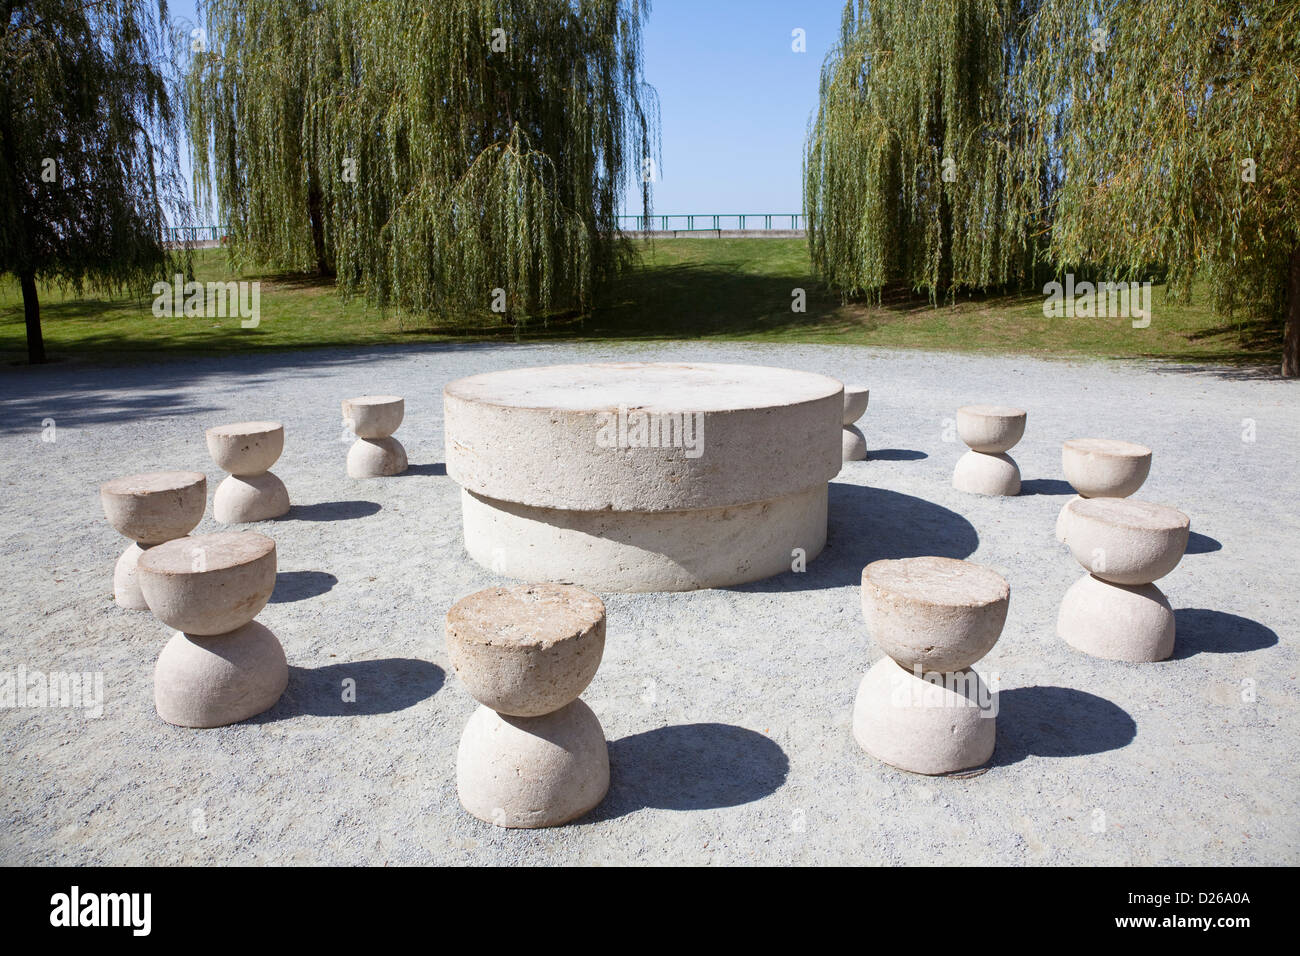 The Table of Silence by Constantin Brancusi, Targu Jiu, 1938. It is ... for Brancusi Table Of Silence  166kxo